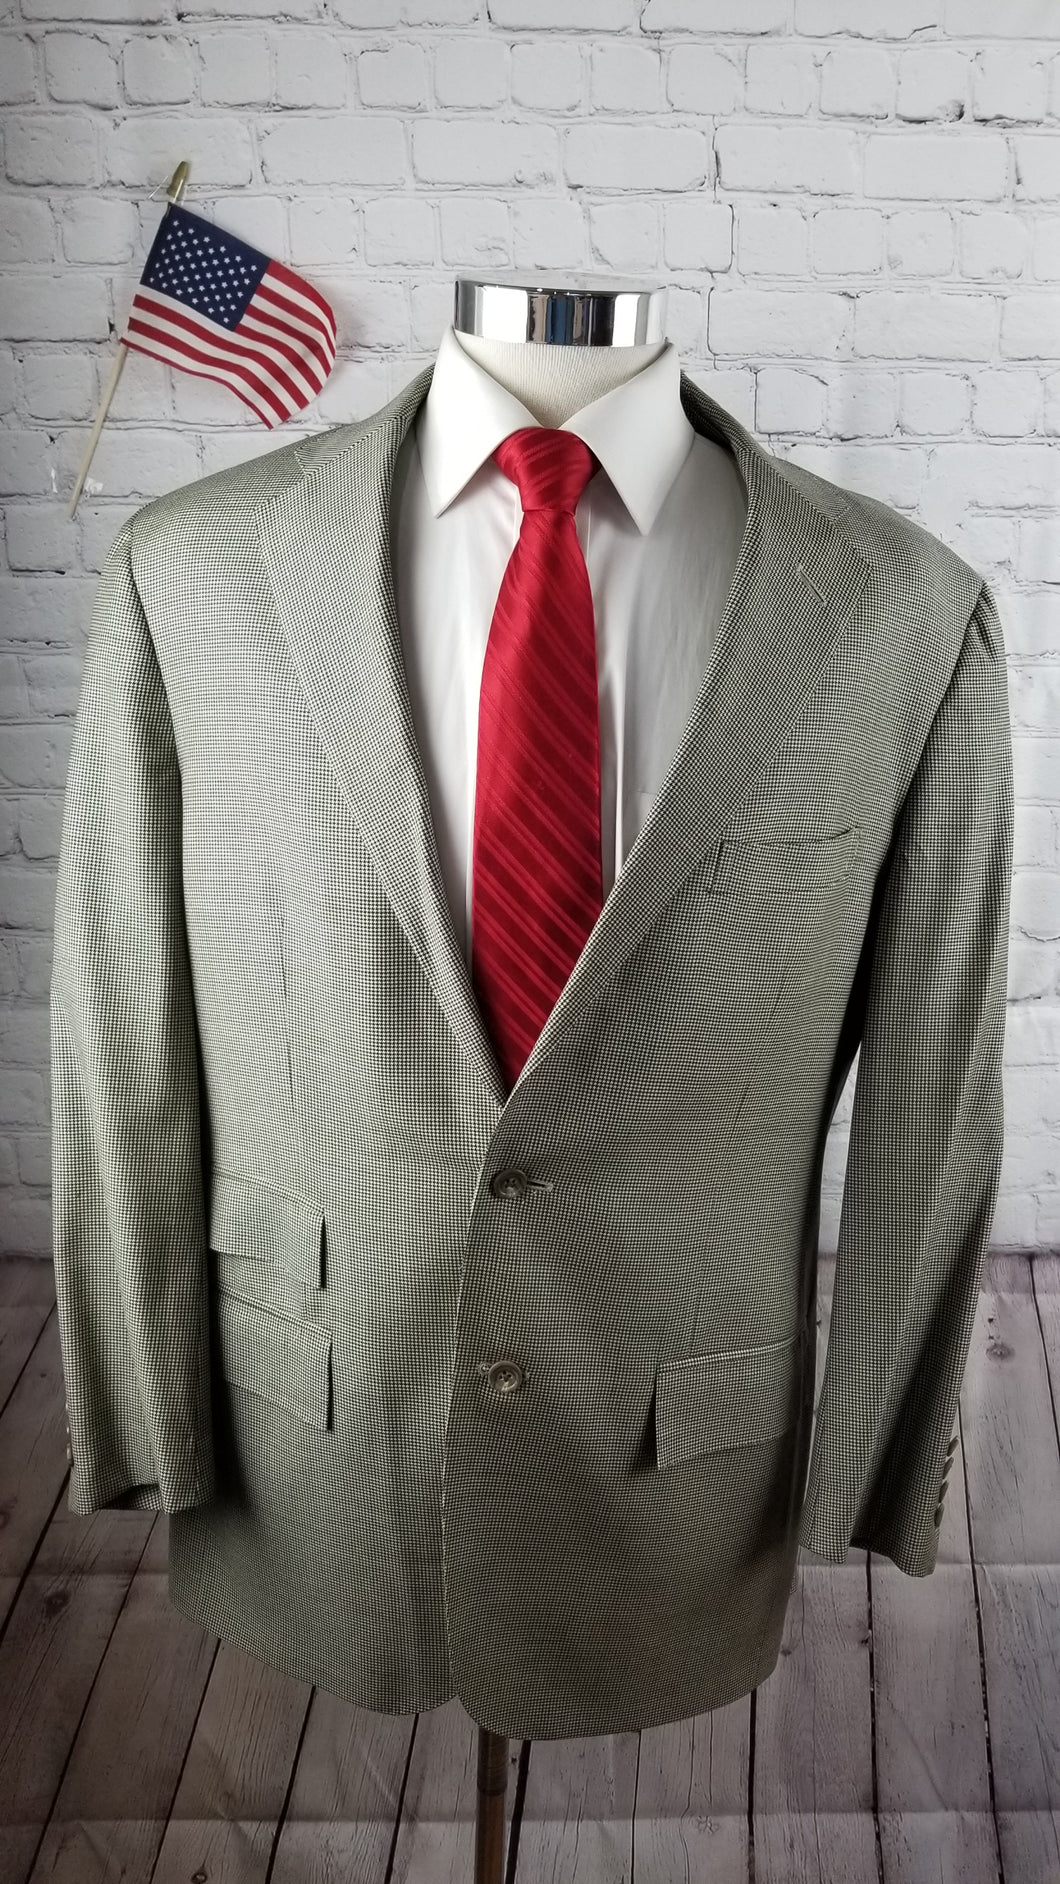 Ralph Lauren Brown Check Wool Suit 42R Pants 34X30 $598 - SUIT CHARITY OUTLET